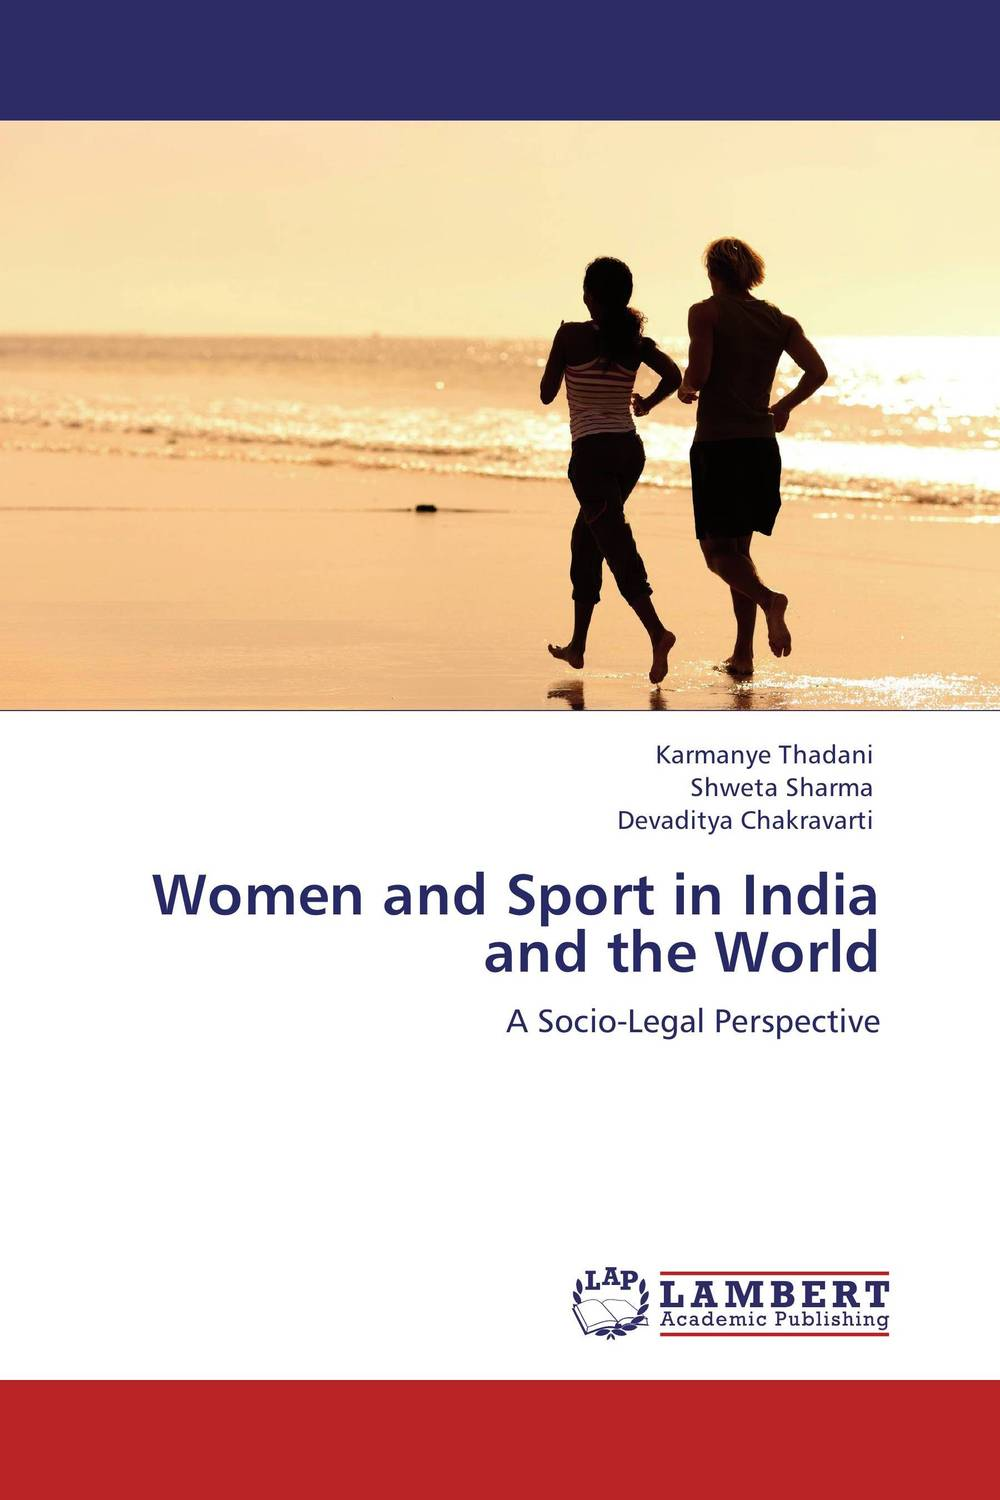 Women and Sport in India and the World